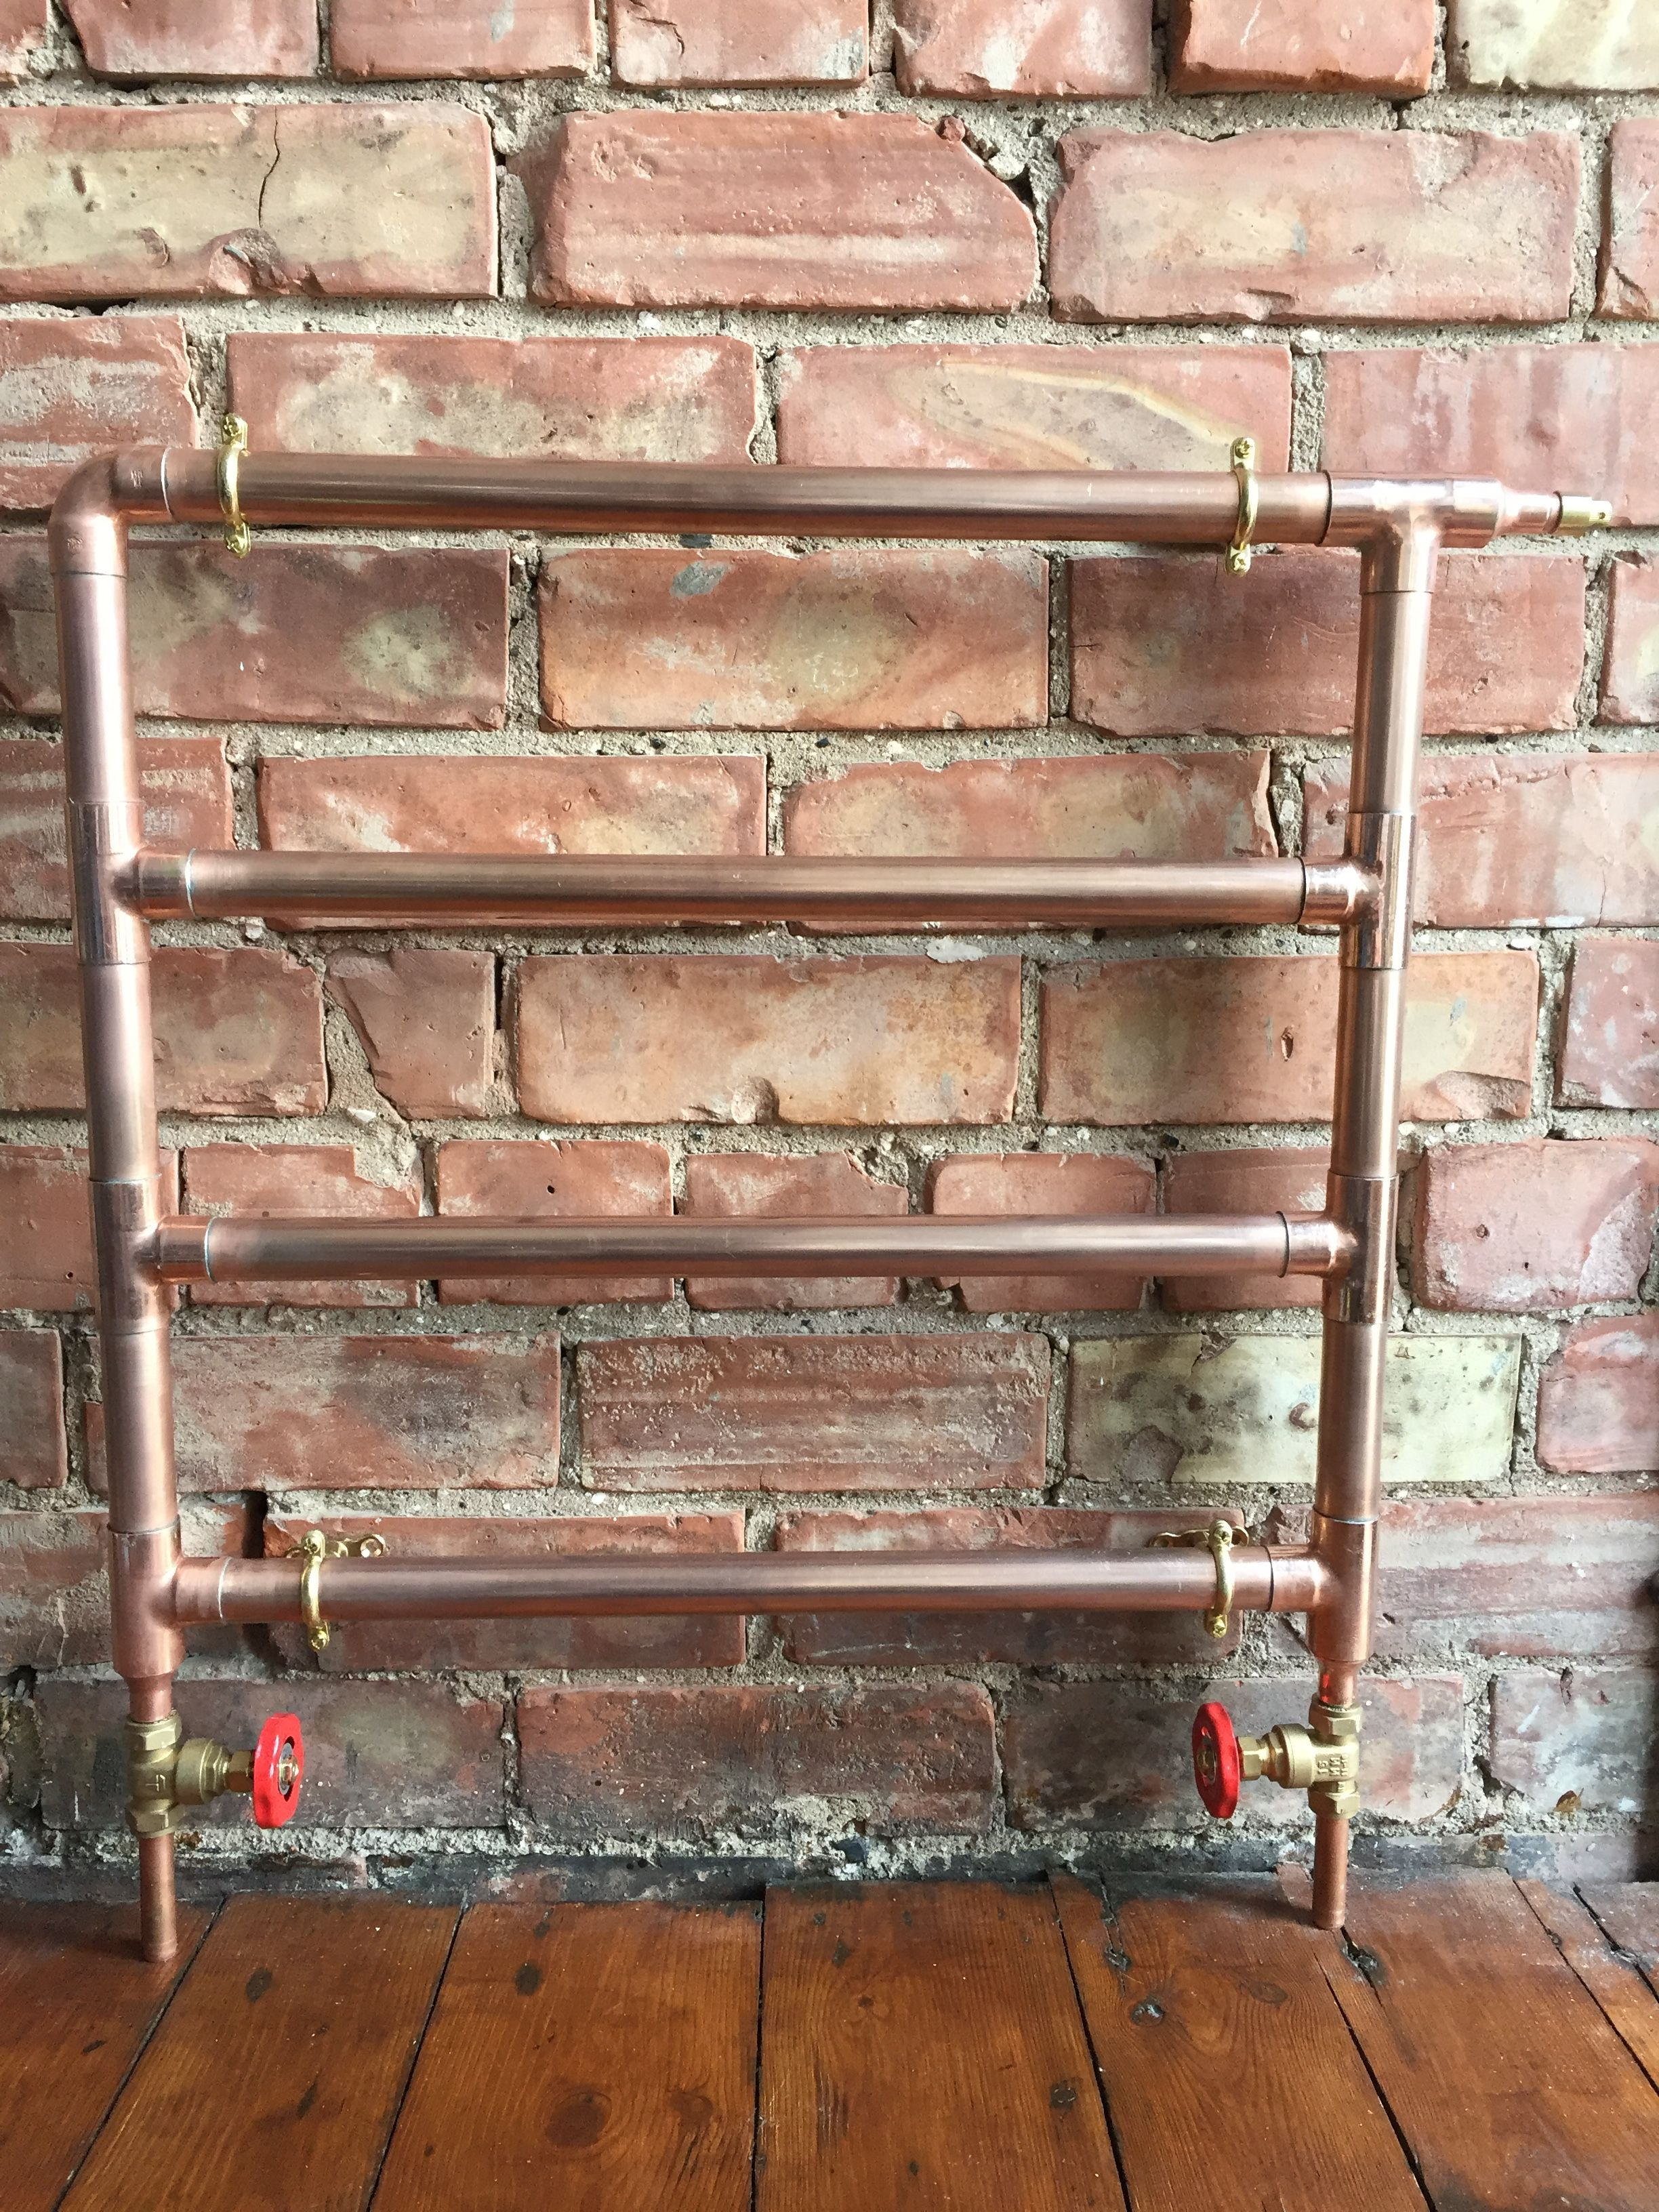 Handmade Copper Tube Radiator On Brickwork Wall Ebay 145  # Muebles Sortimo